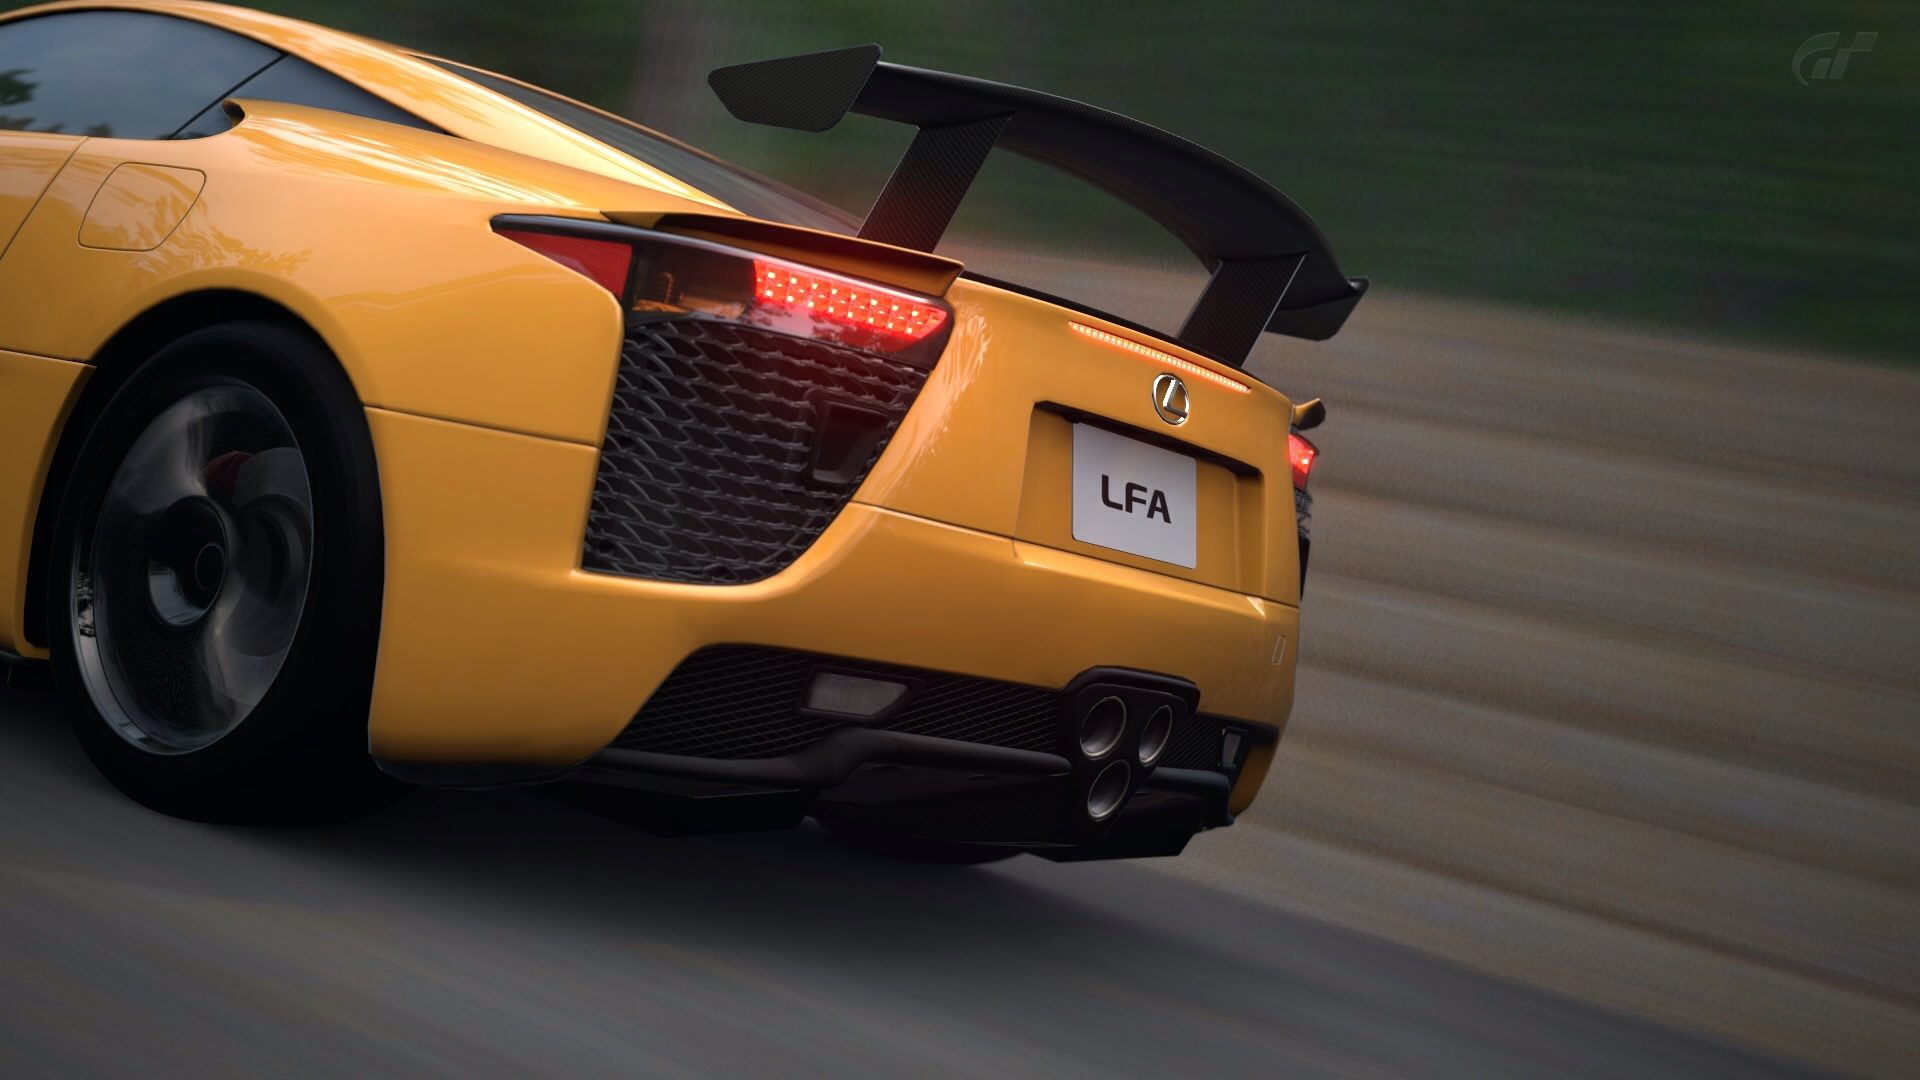 LFA Nurburgring Ed. Goodwood (8).jpg